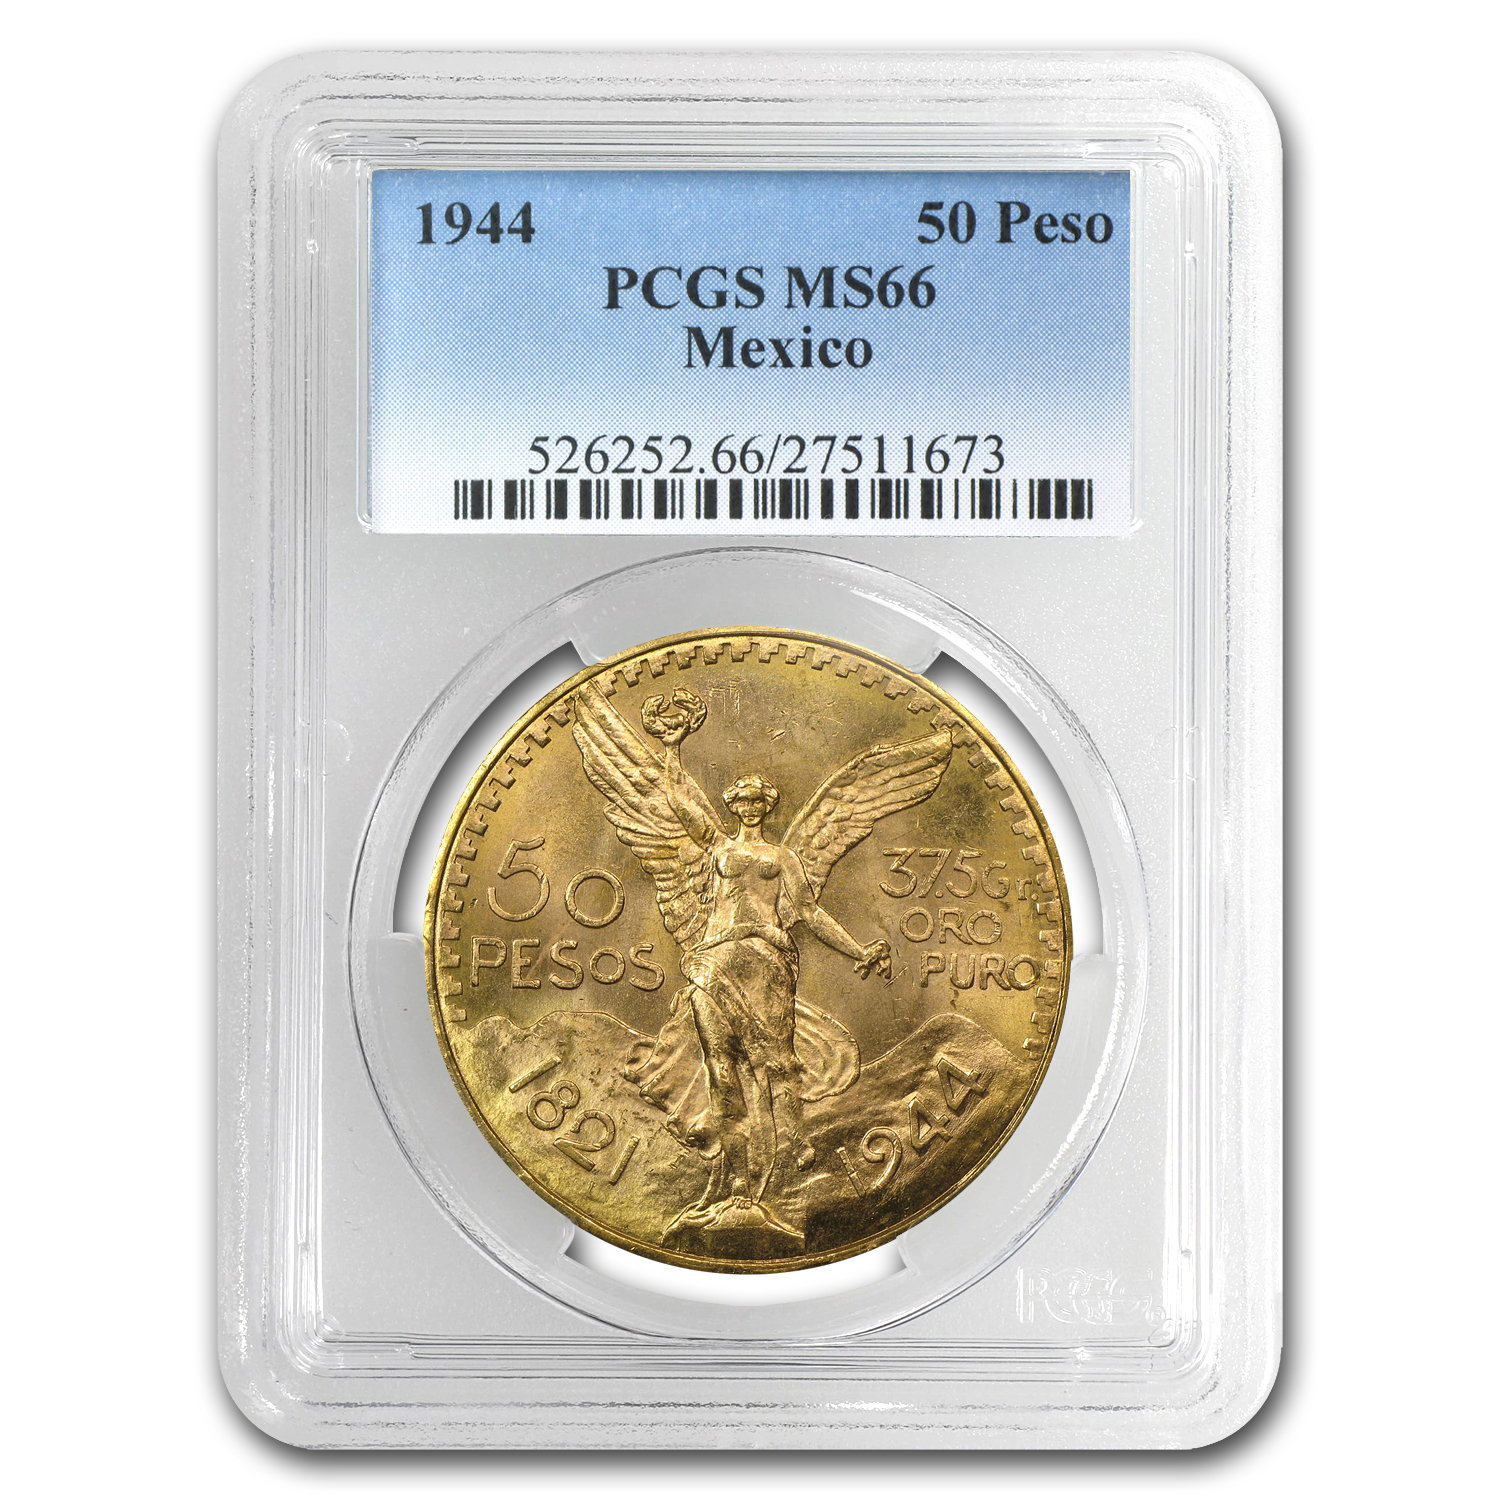 1944 Mexico 50 Pesos Gold MS-66 PCGS (Finest Known)